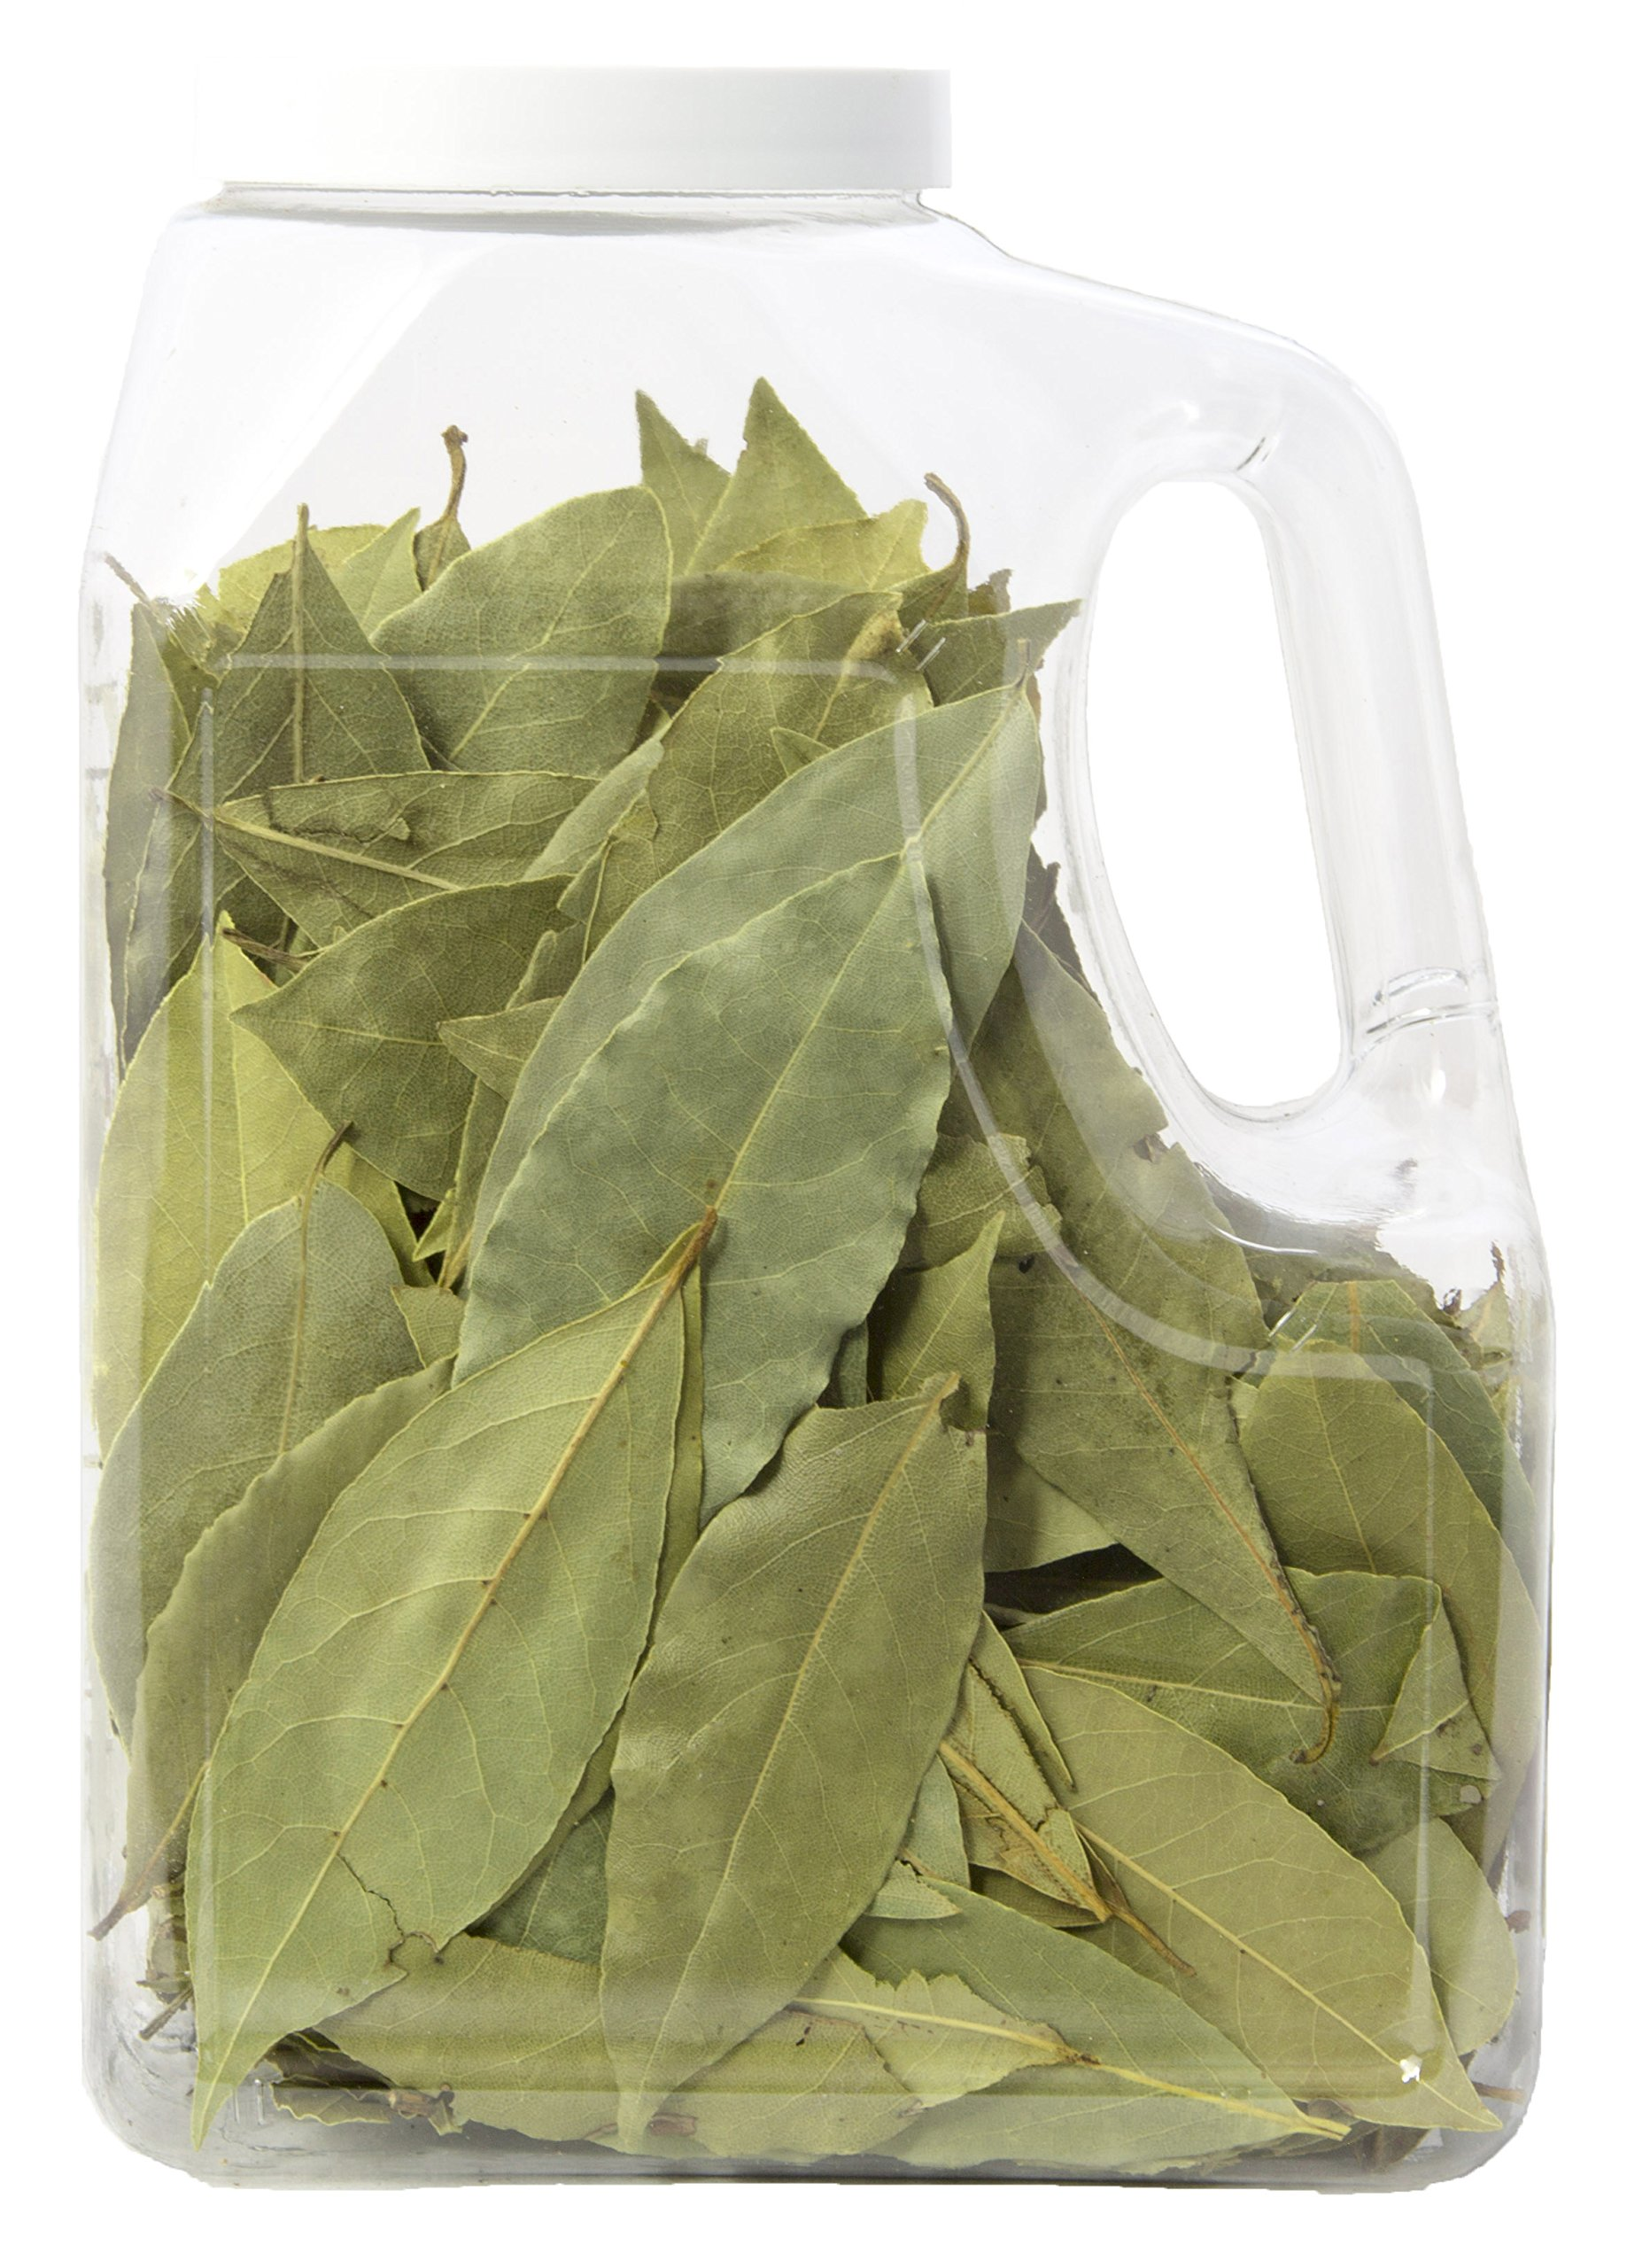 Mediterranean Bay Leaves : Laurel Leaf : Dried Herb Kosher 2.5oz. by Burma Spice (Image #2)